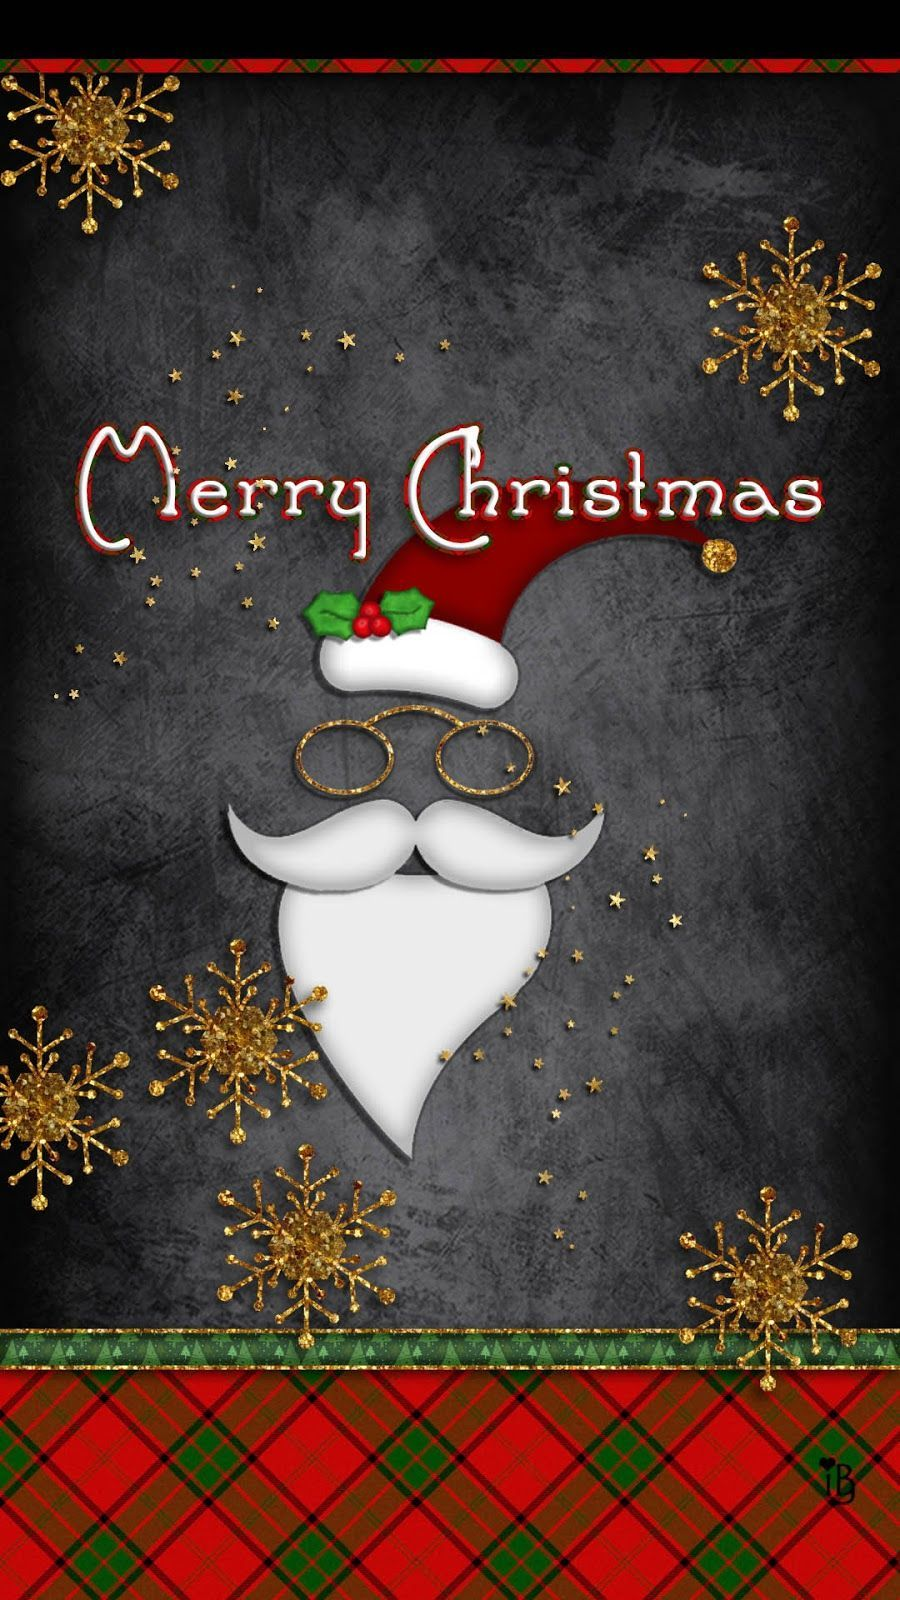 Merry Christmas May your holidays be happy days, filled